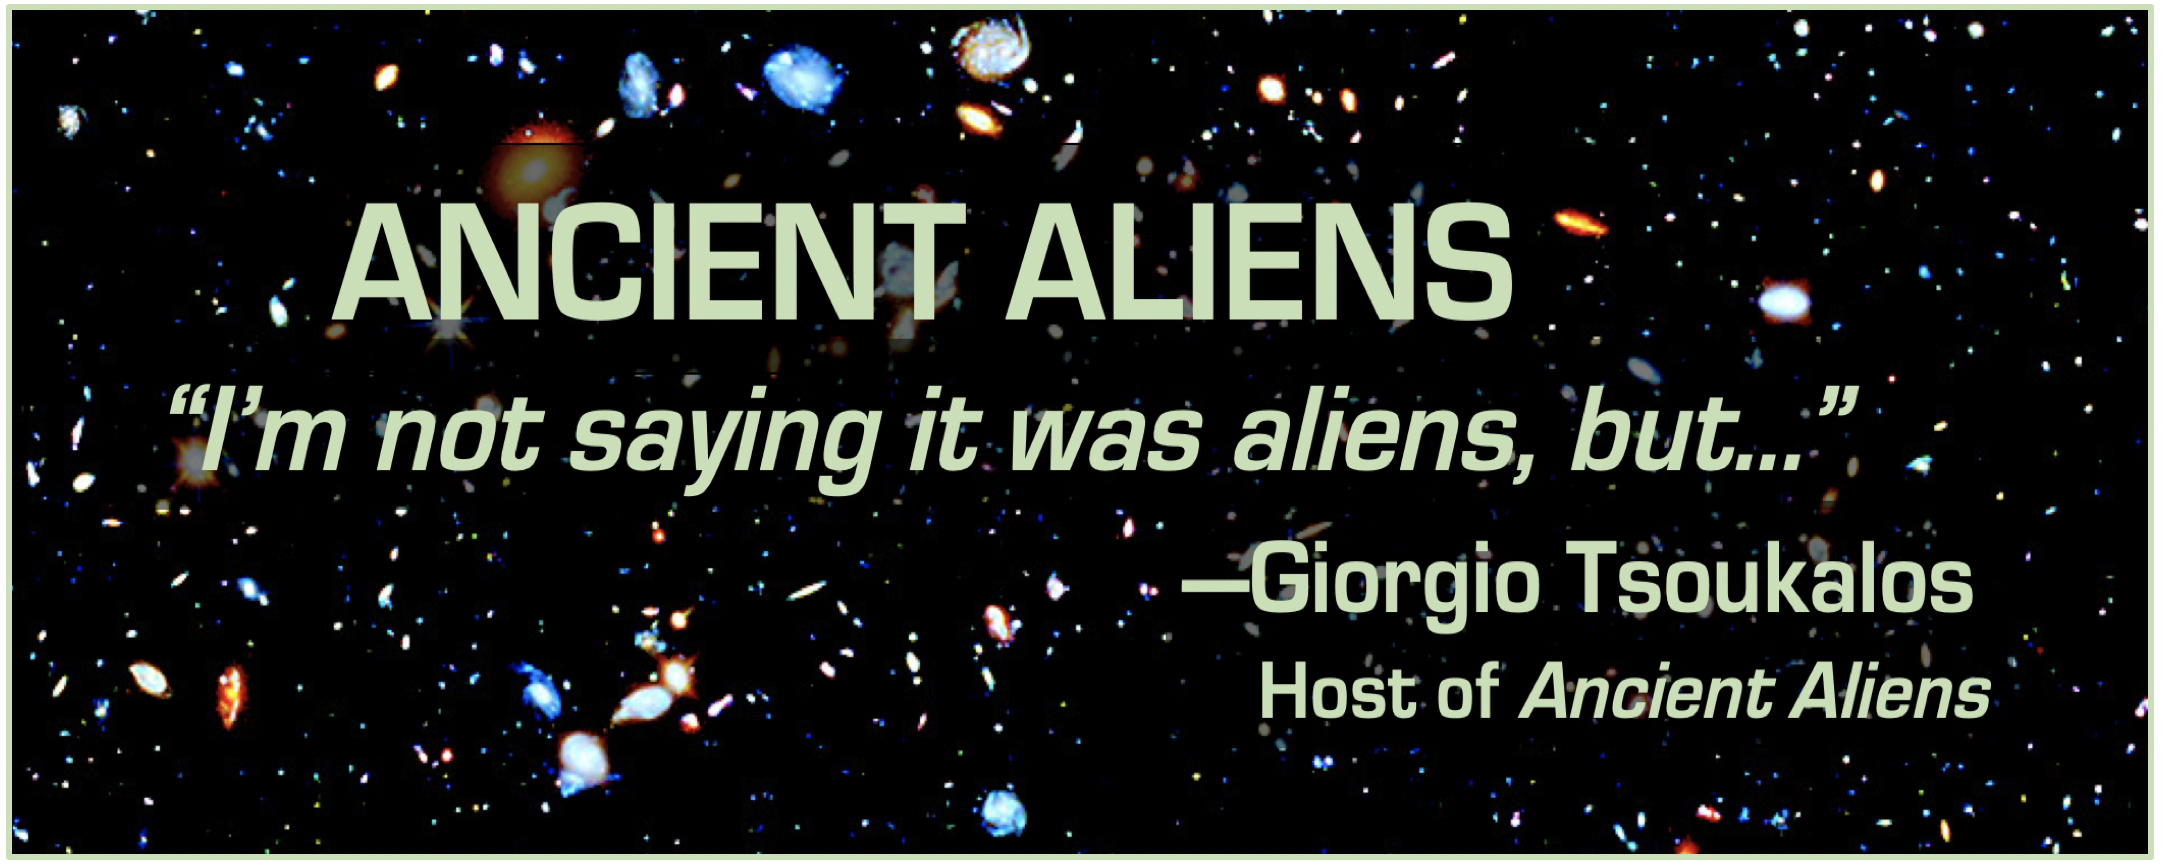 Ancient Aliens: Evidence of Stephen Hawking